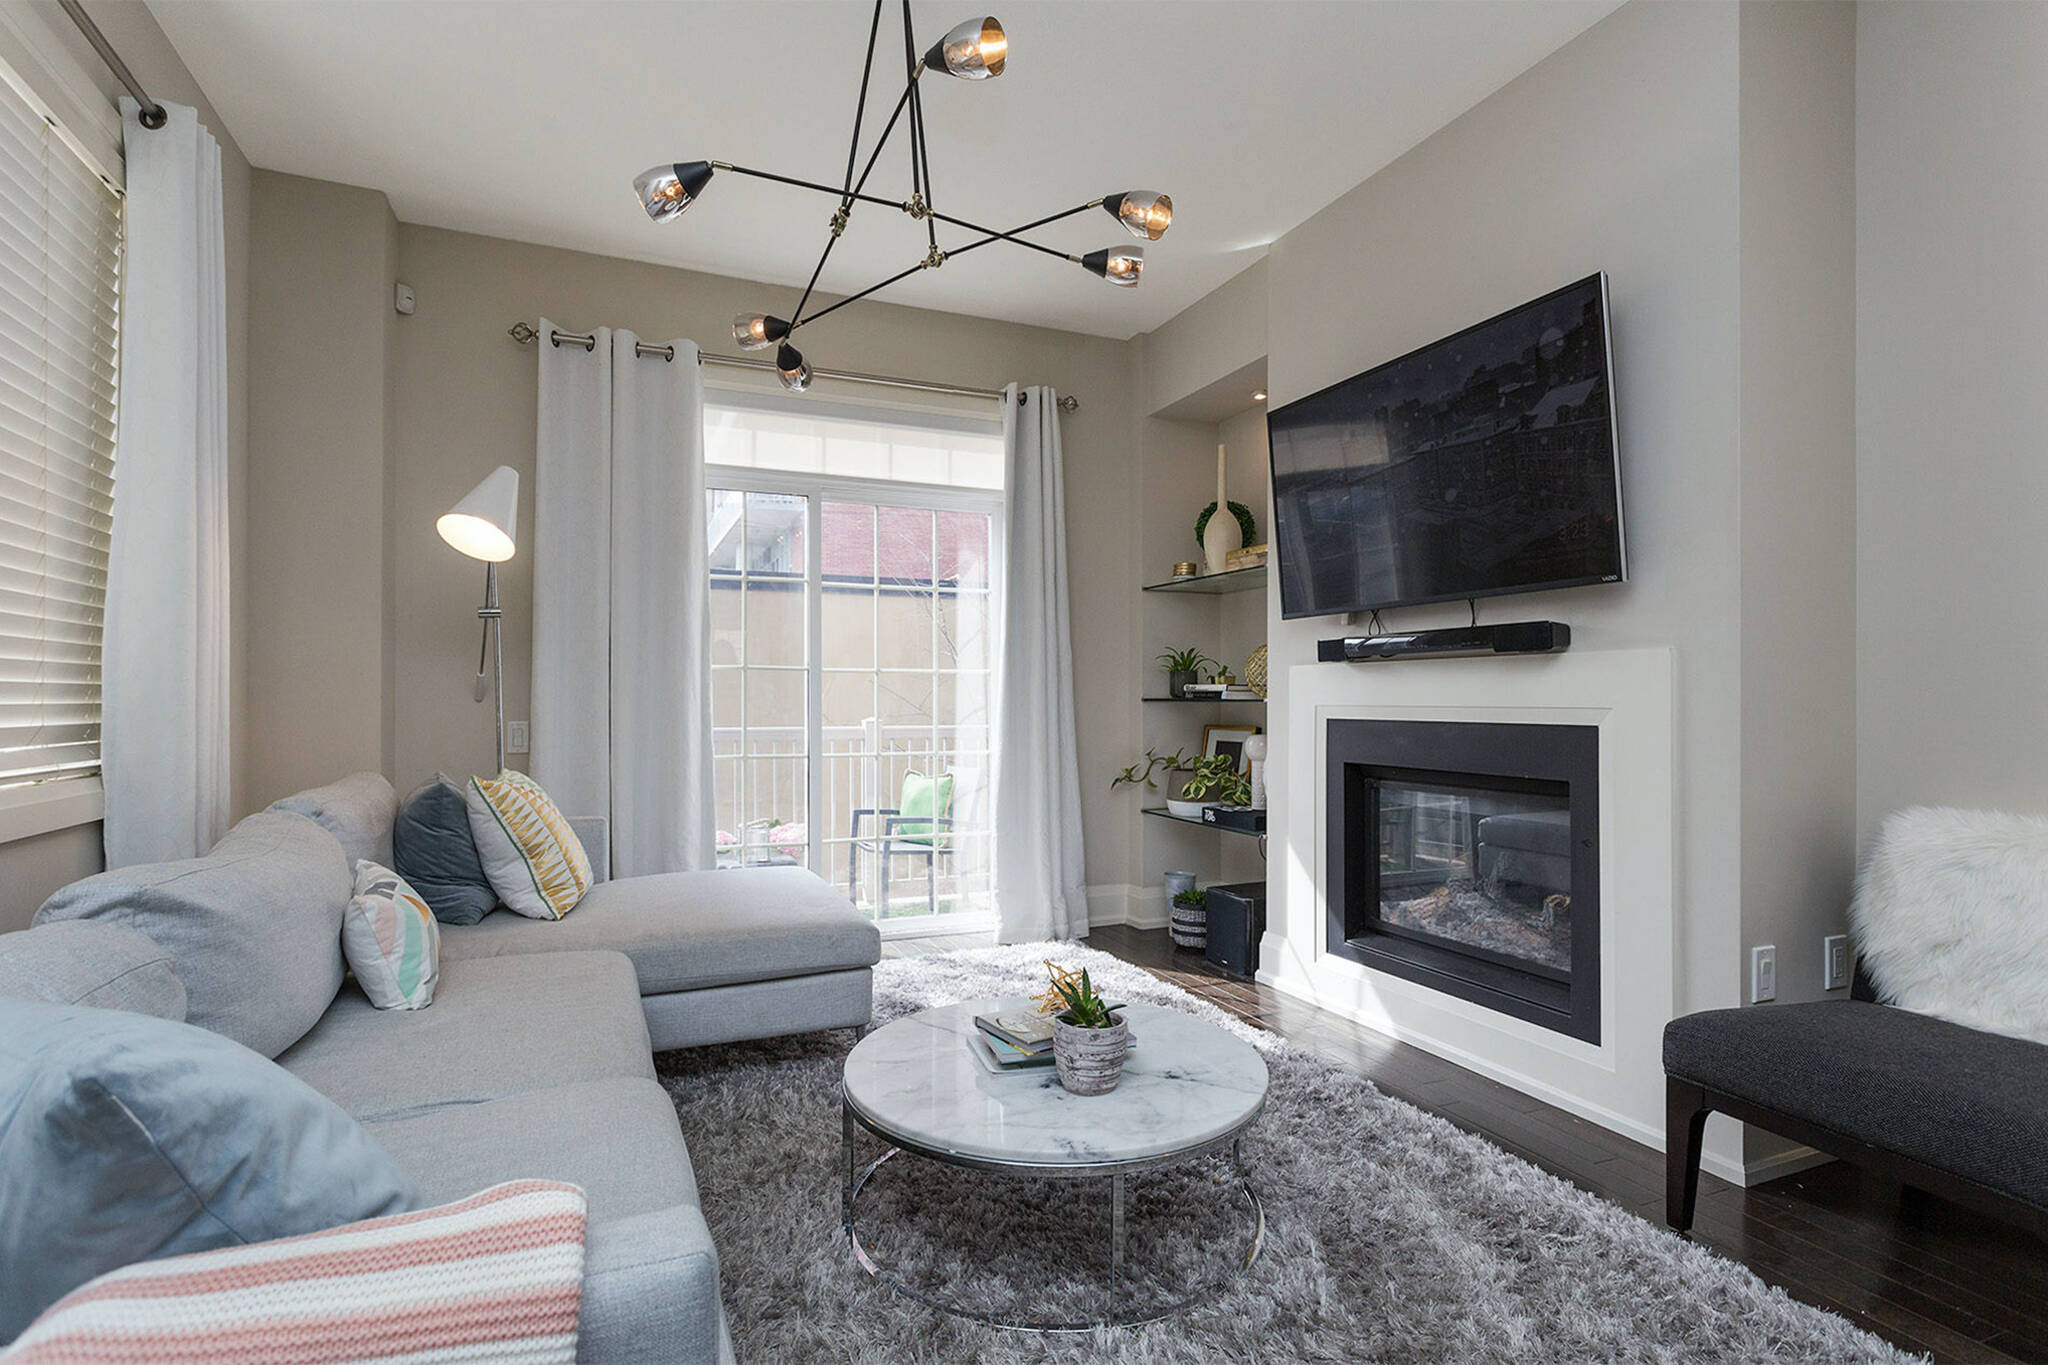 Sold! Toronto townhouse goes for $211K above asking on